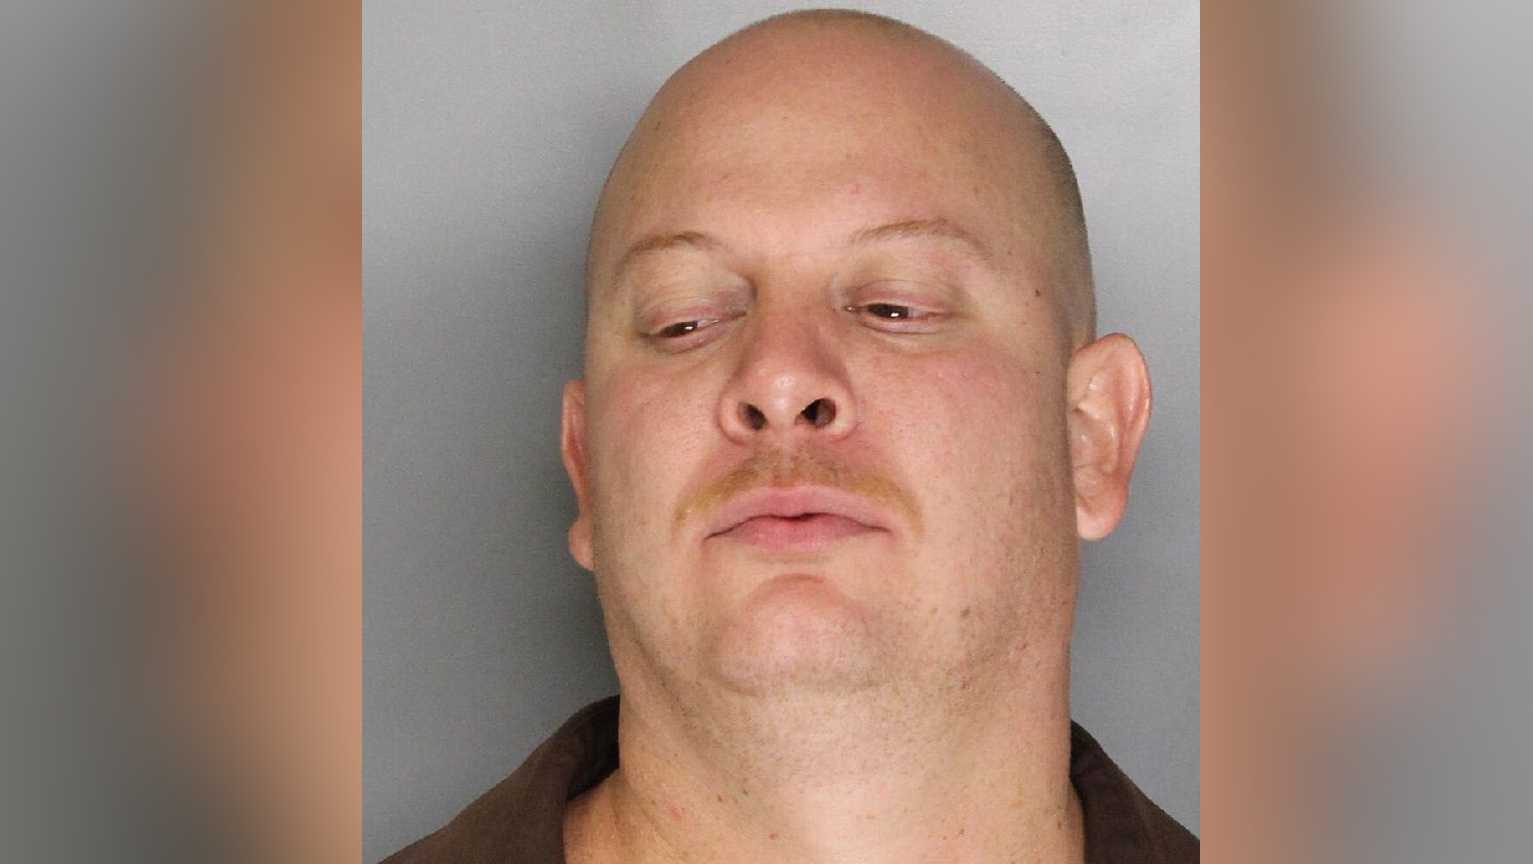 Eric Pauly, 35, of Citrus Heights, was arrested Tuesday, July 18, 2017, after a turtle was found stabbed and barbecued, the Elk Grove Police Department said.